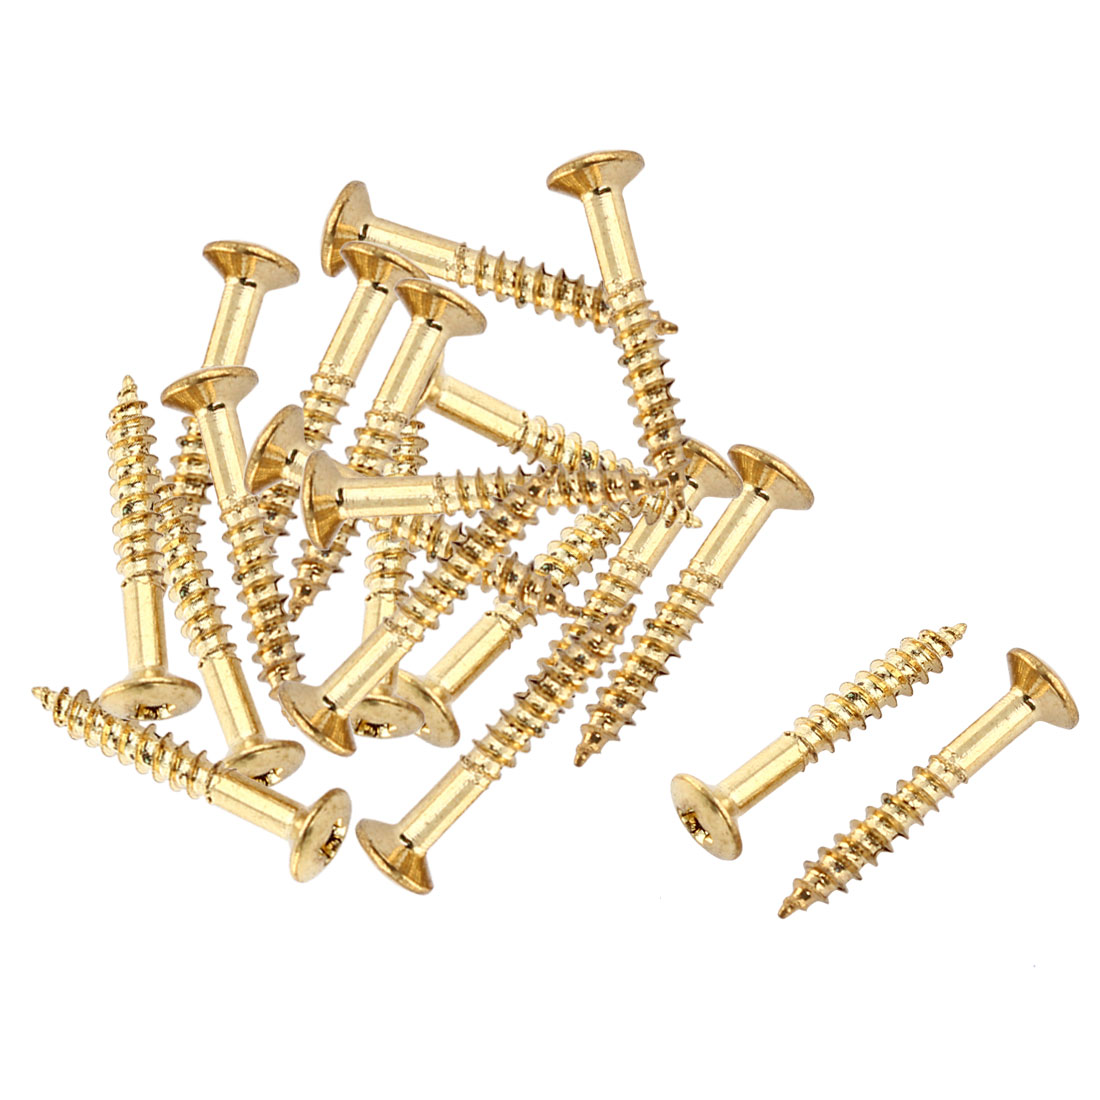 Pickup Frame Electric Guitar Pickguard Mounting  Screw Gold Tone 20pcs